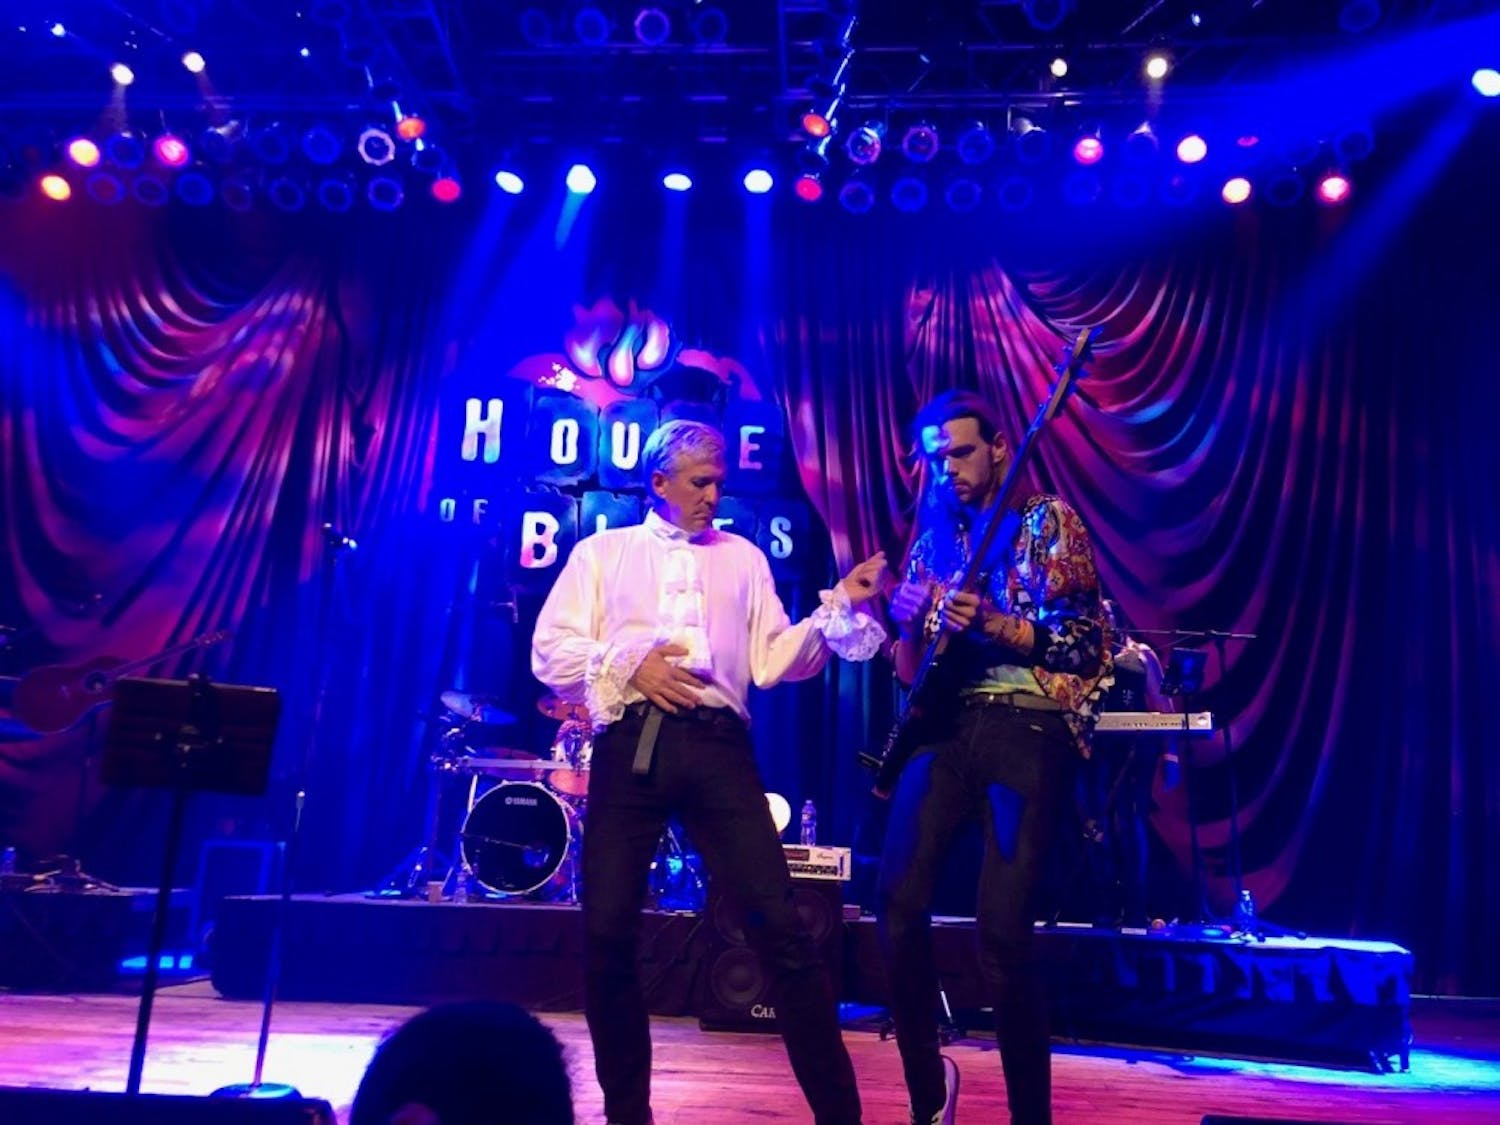 Stardust to Ashes lead singer Steve Baker and son Duncan Baker perform at the House of Blues in Myrtle Beach on Oct. 19. Photo courtesy of Steve Baker.